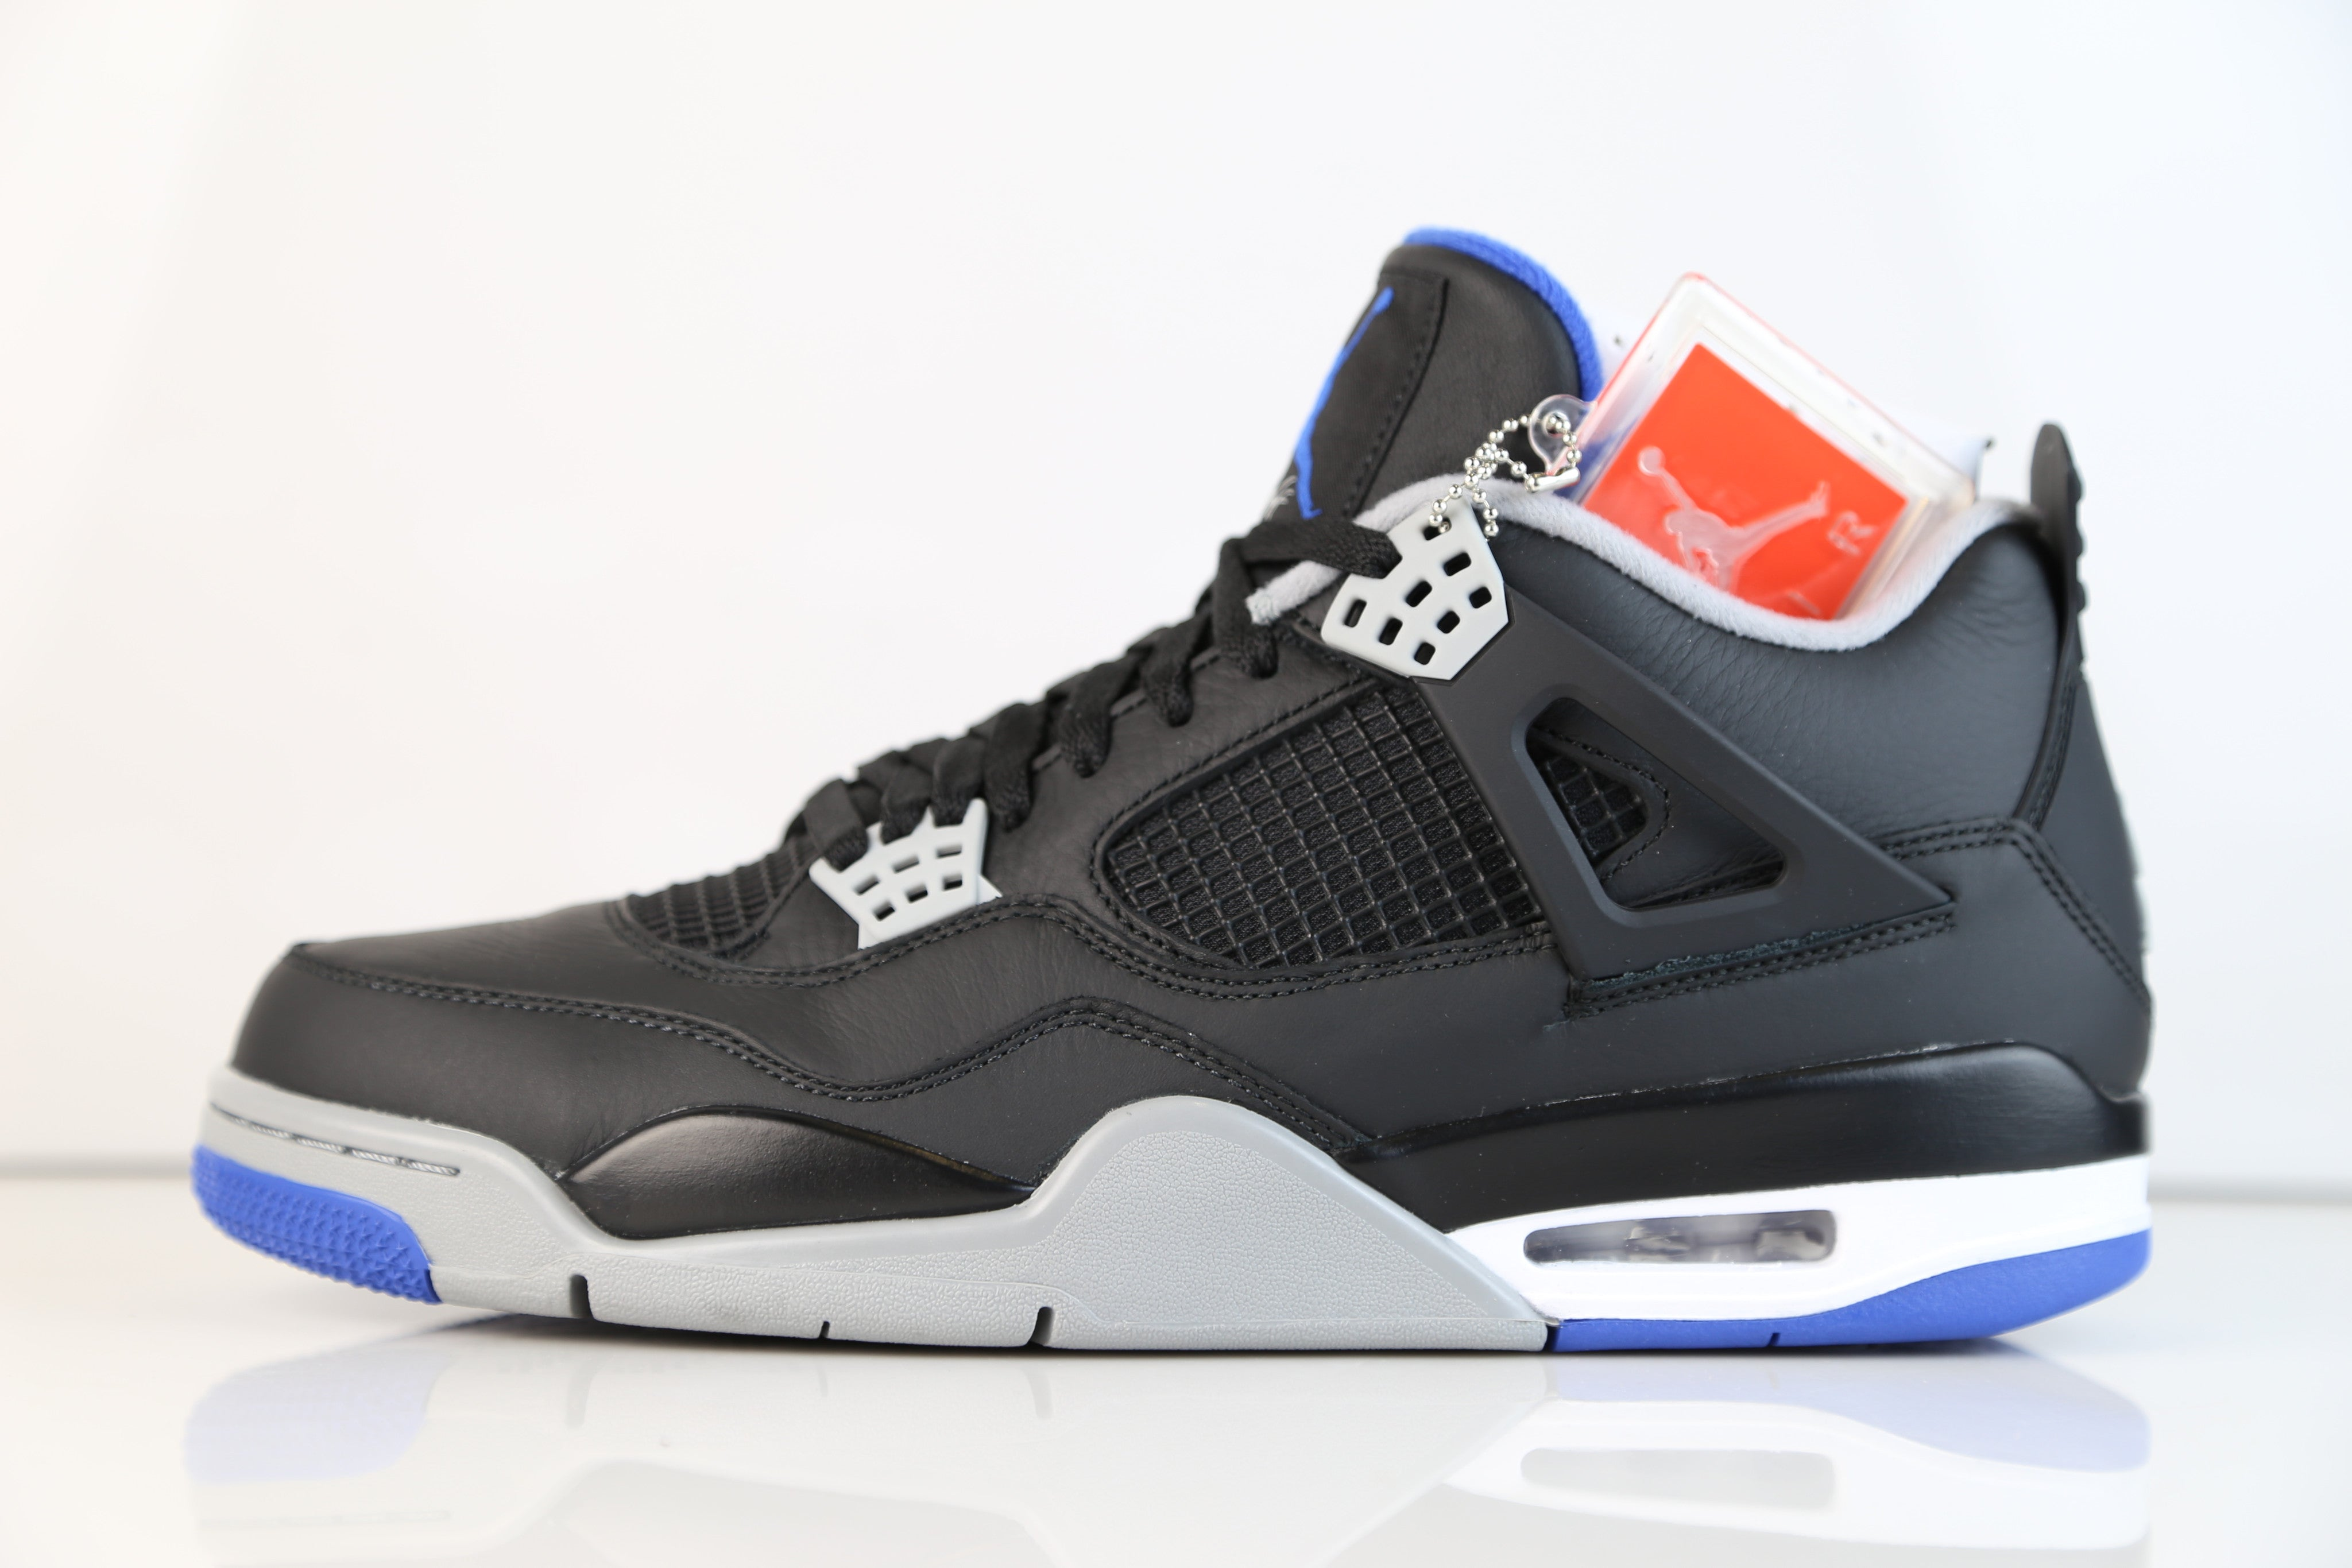 outlet store f2d3c d3f22 Nike Air Jordan Retro 4 Black Royal Blue Alternate ...